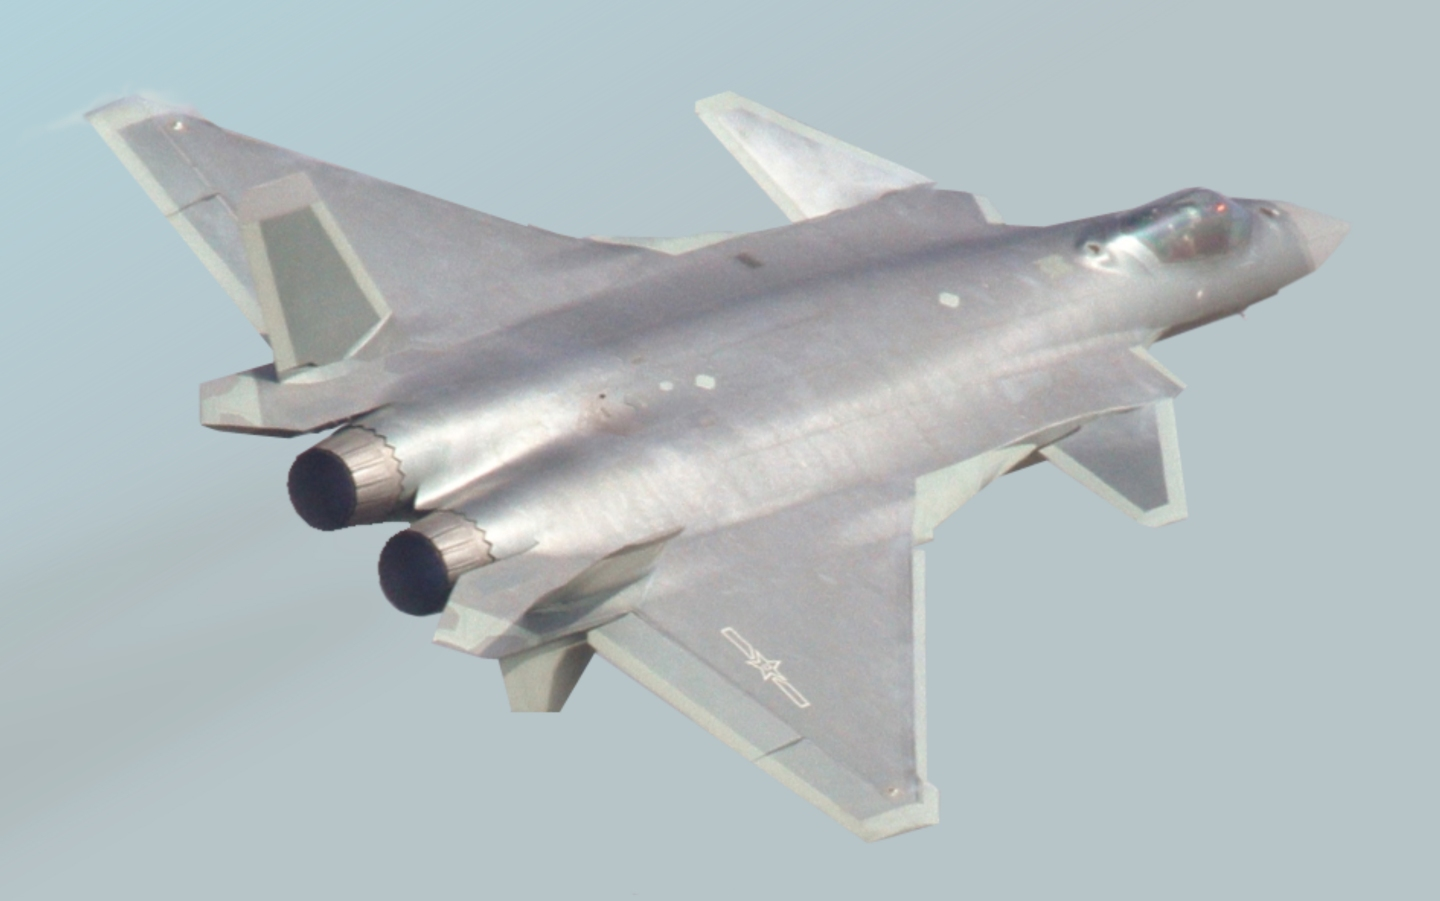 Chengdu J-20 Chinese peoples liberation army air force